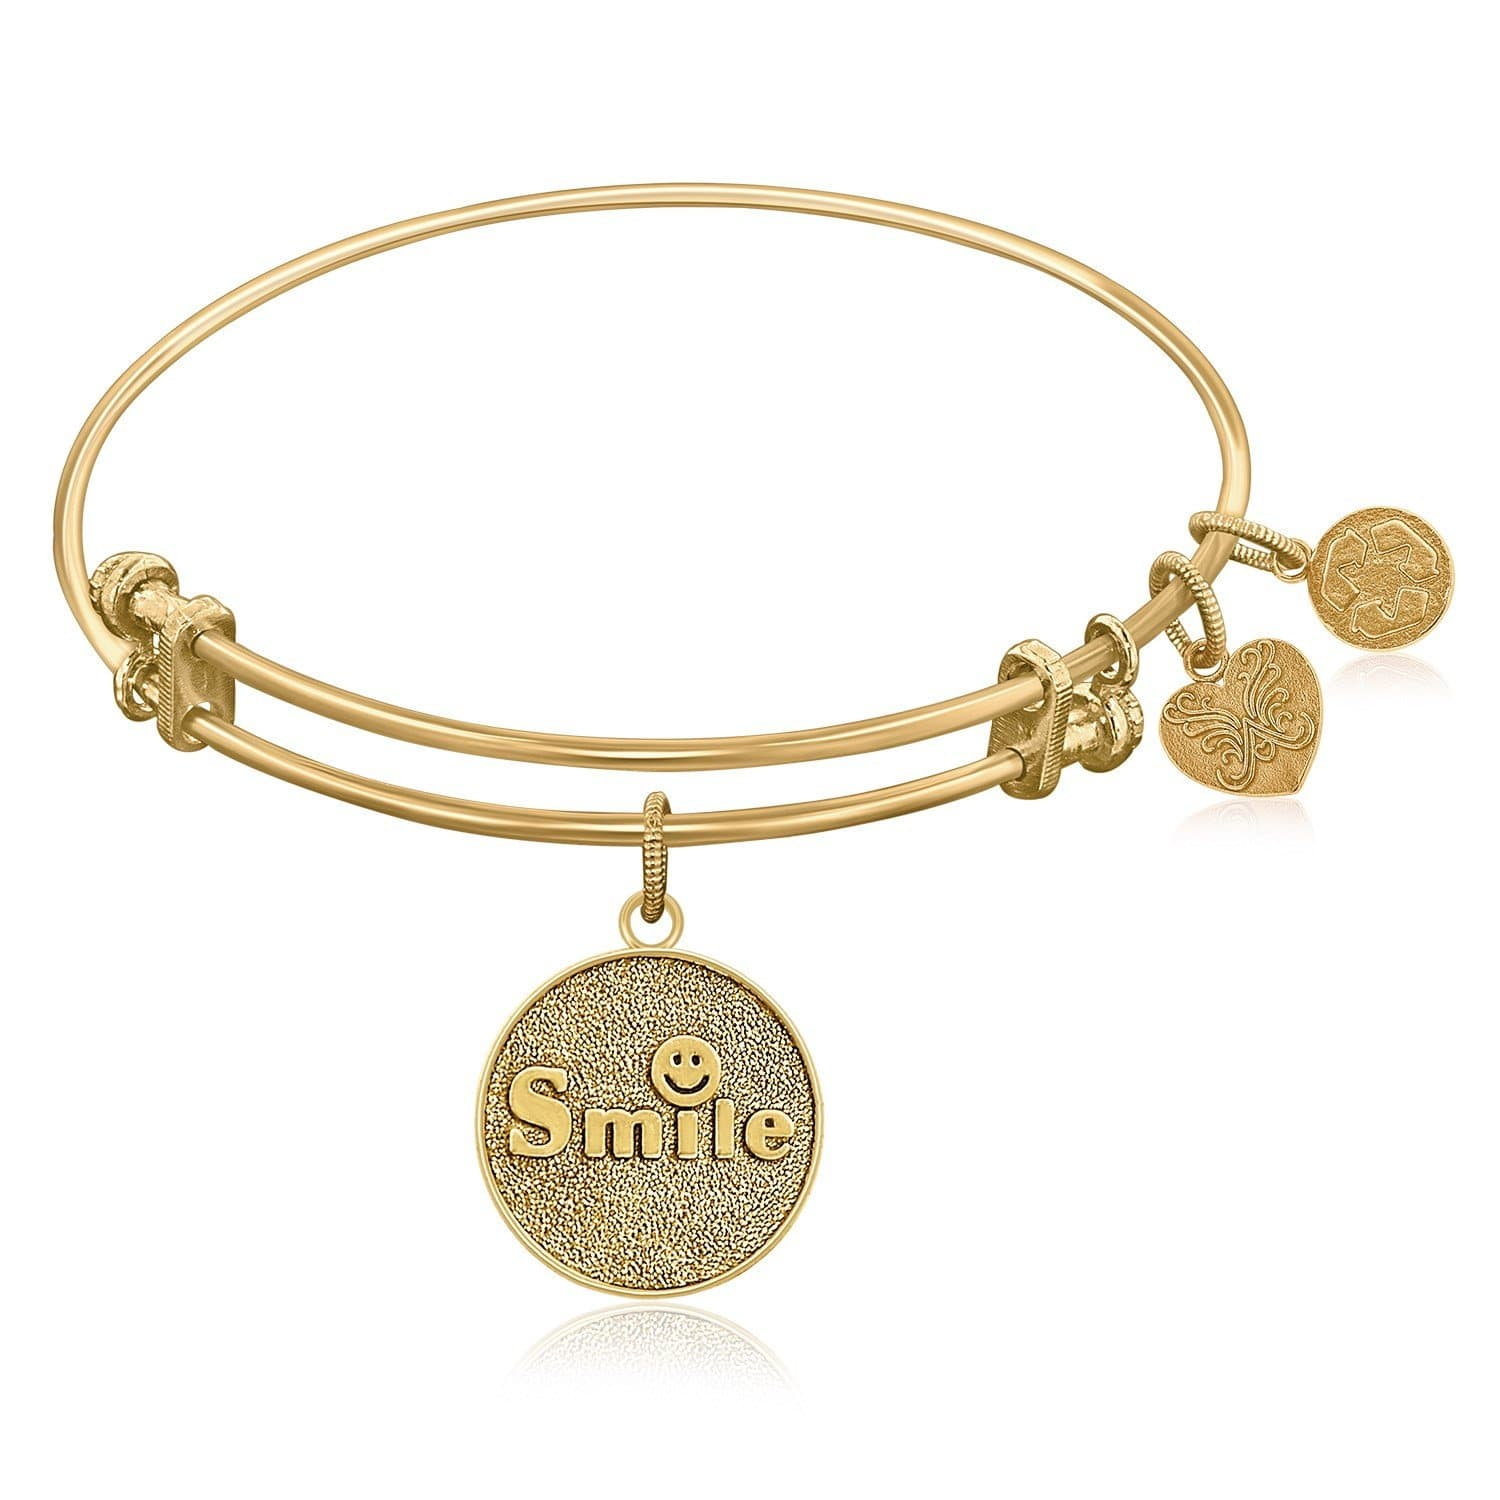 Expandable Bangle in Yellow Tone Brass with Smile Symbol